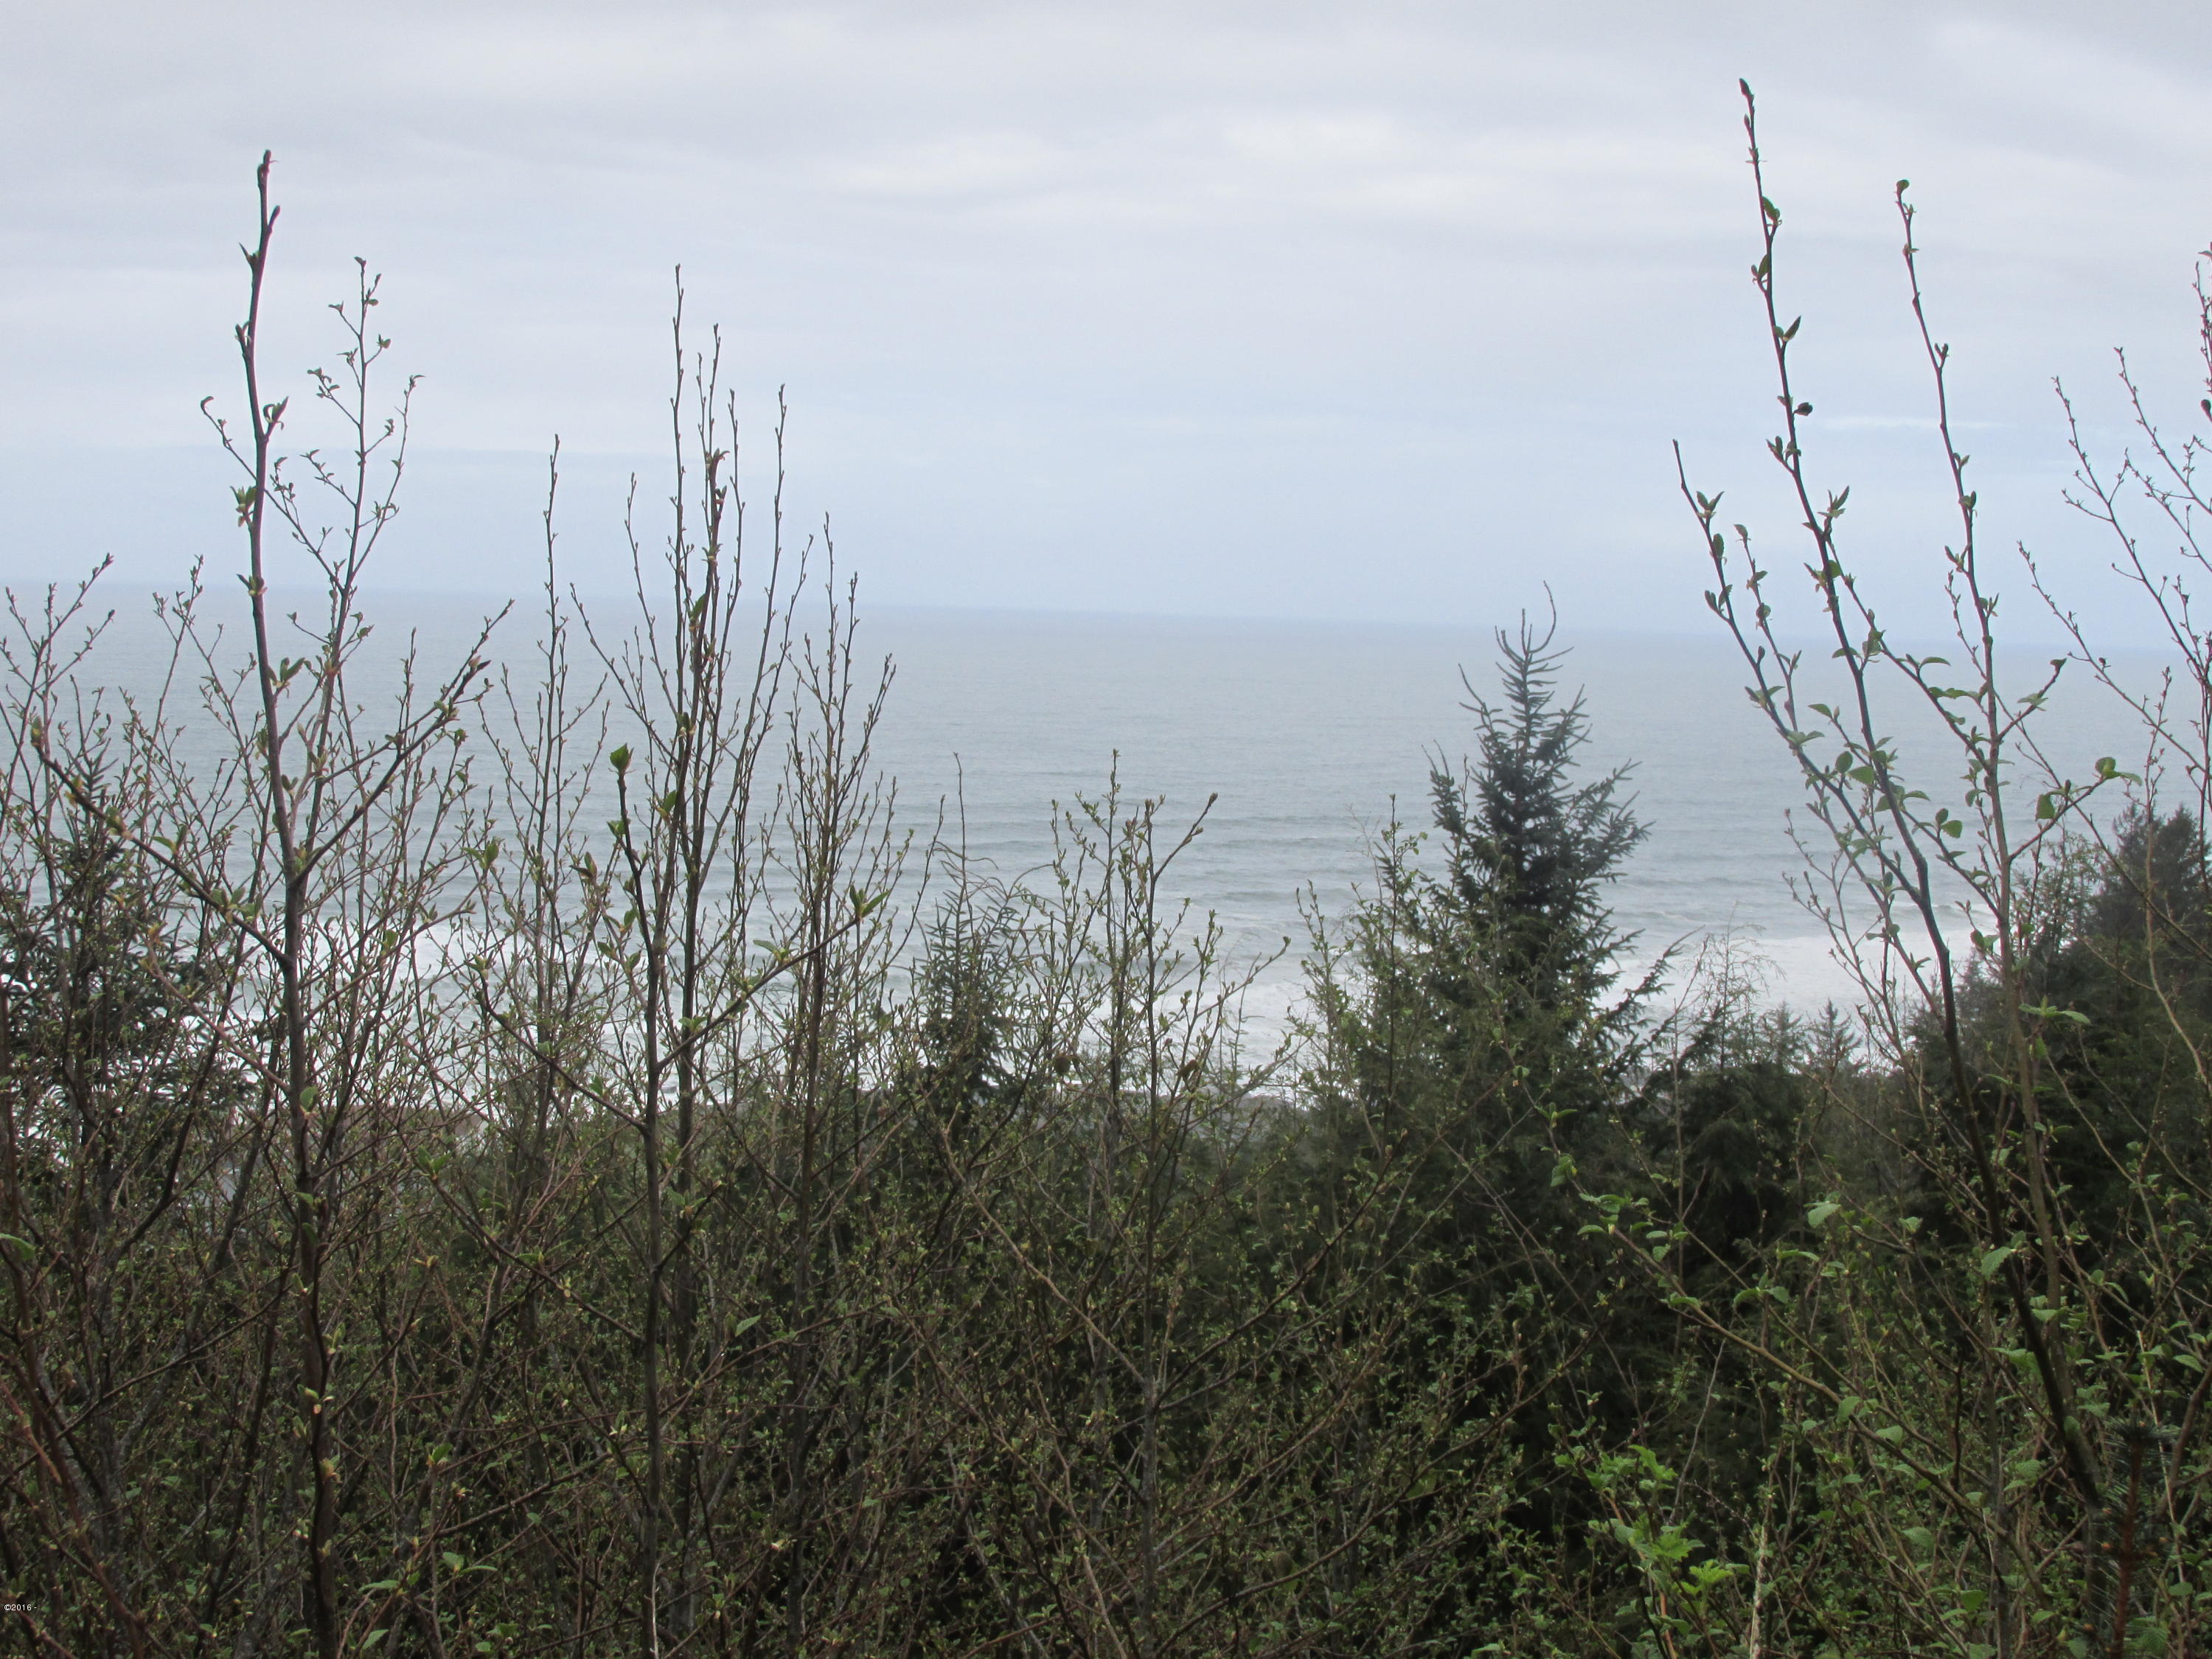 TL 6600 Gimlet Ln, Yachats, OR 97498 - OCEAN VIEW LOT 14